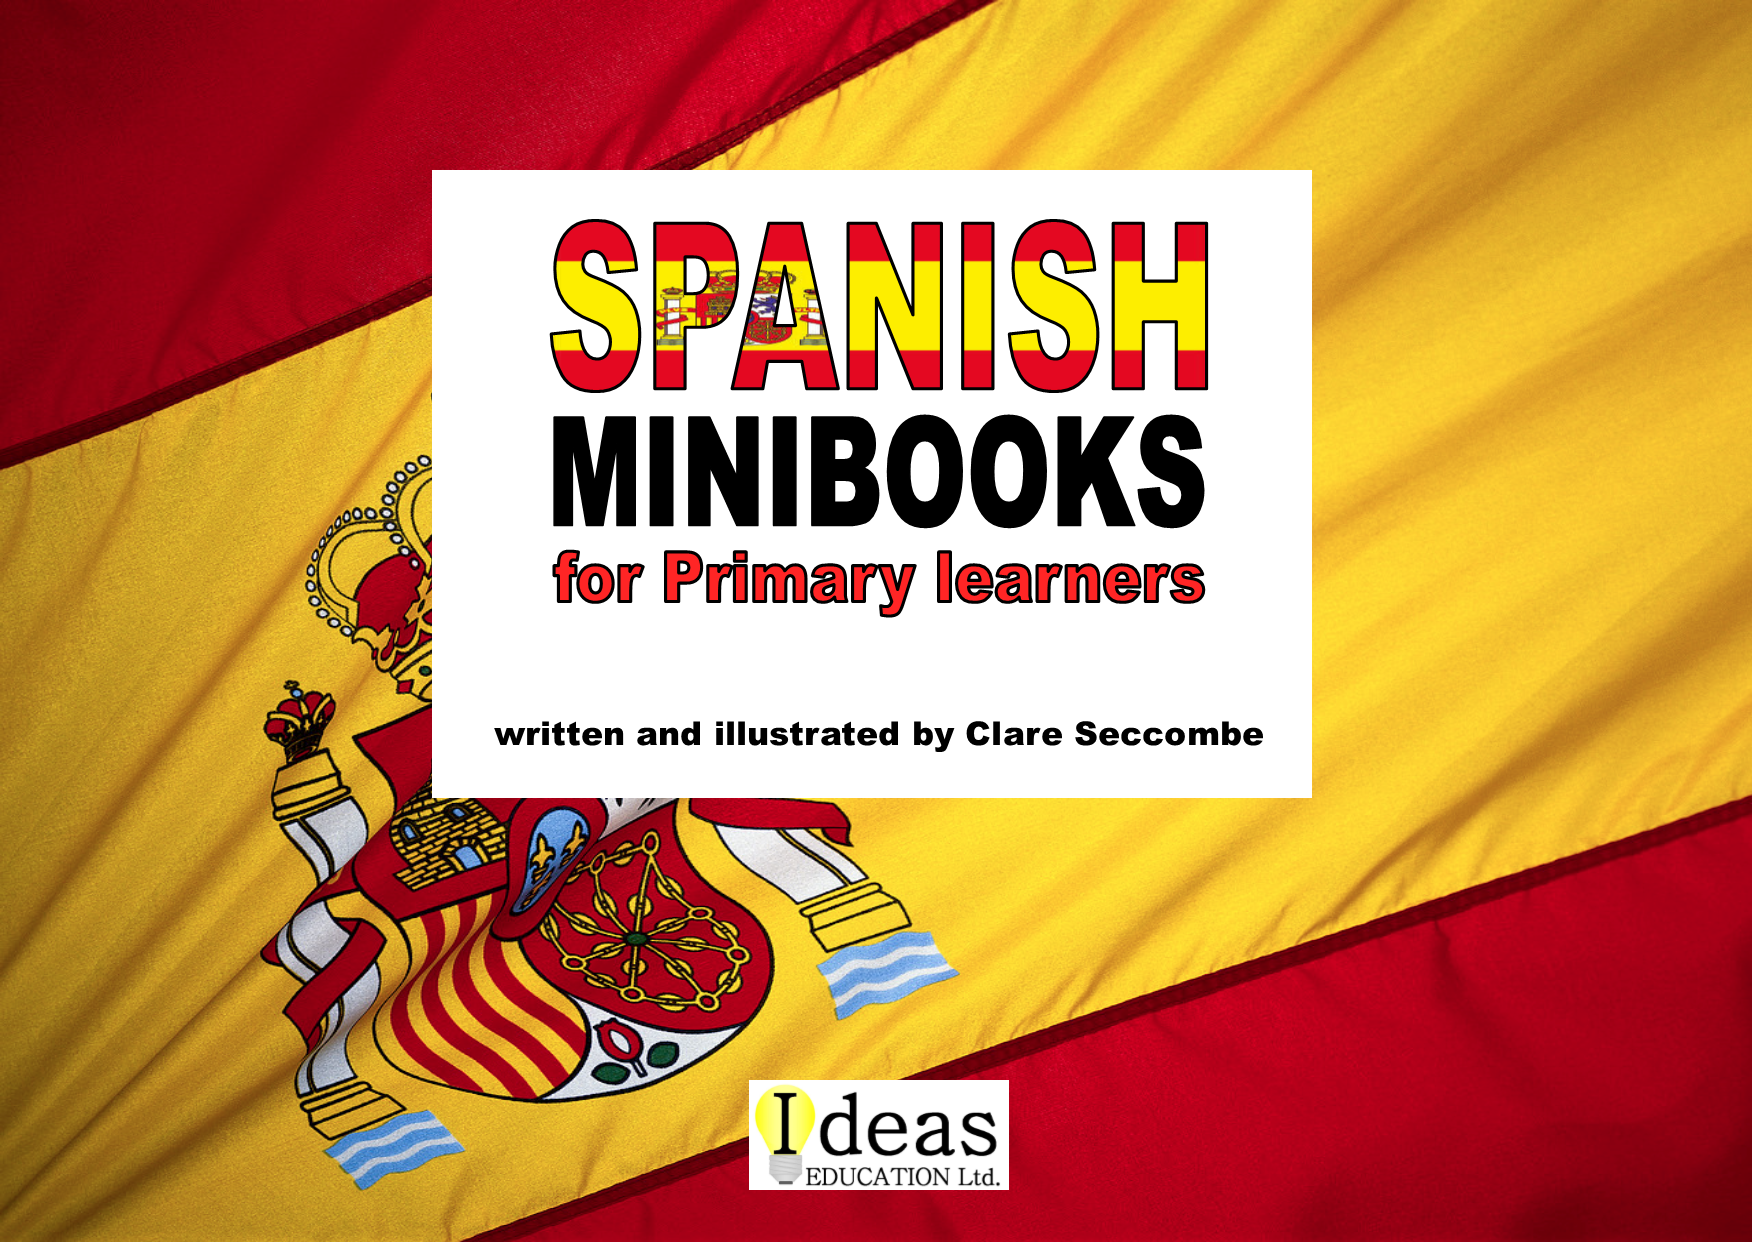 Spanish Minibooks for Primary learners